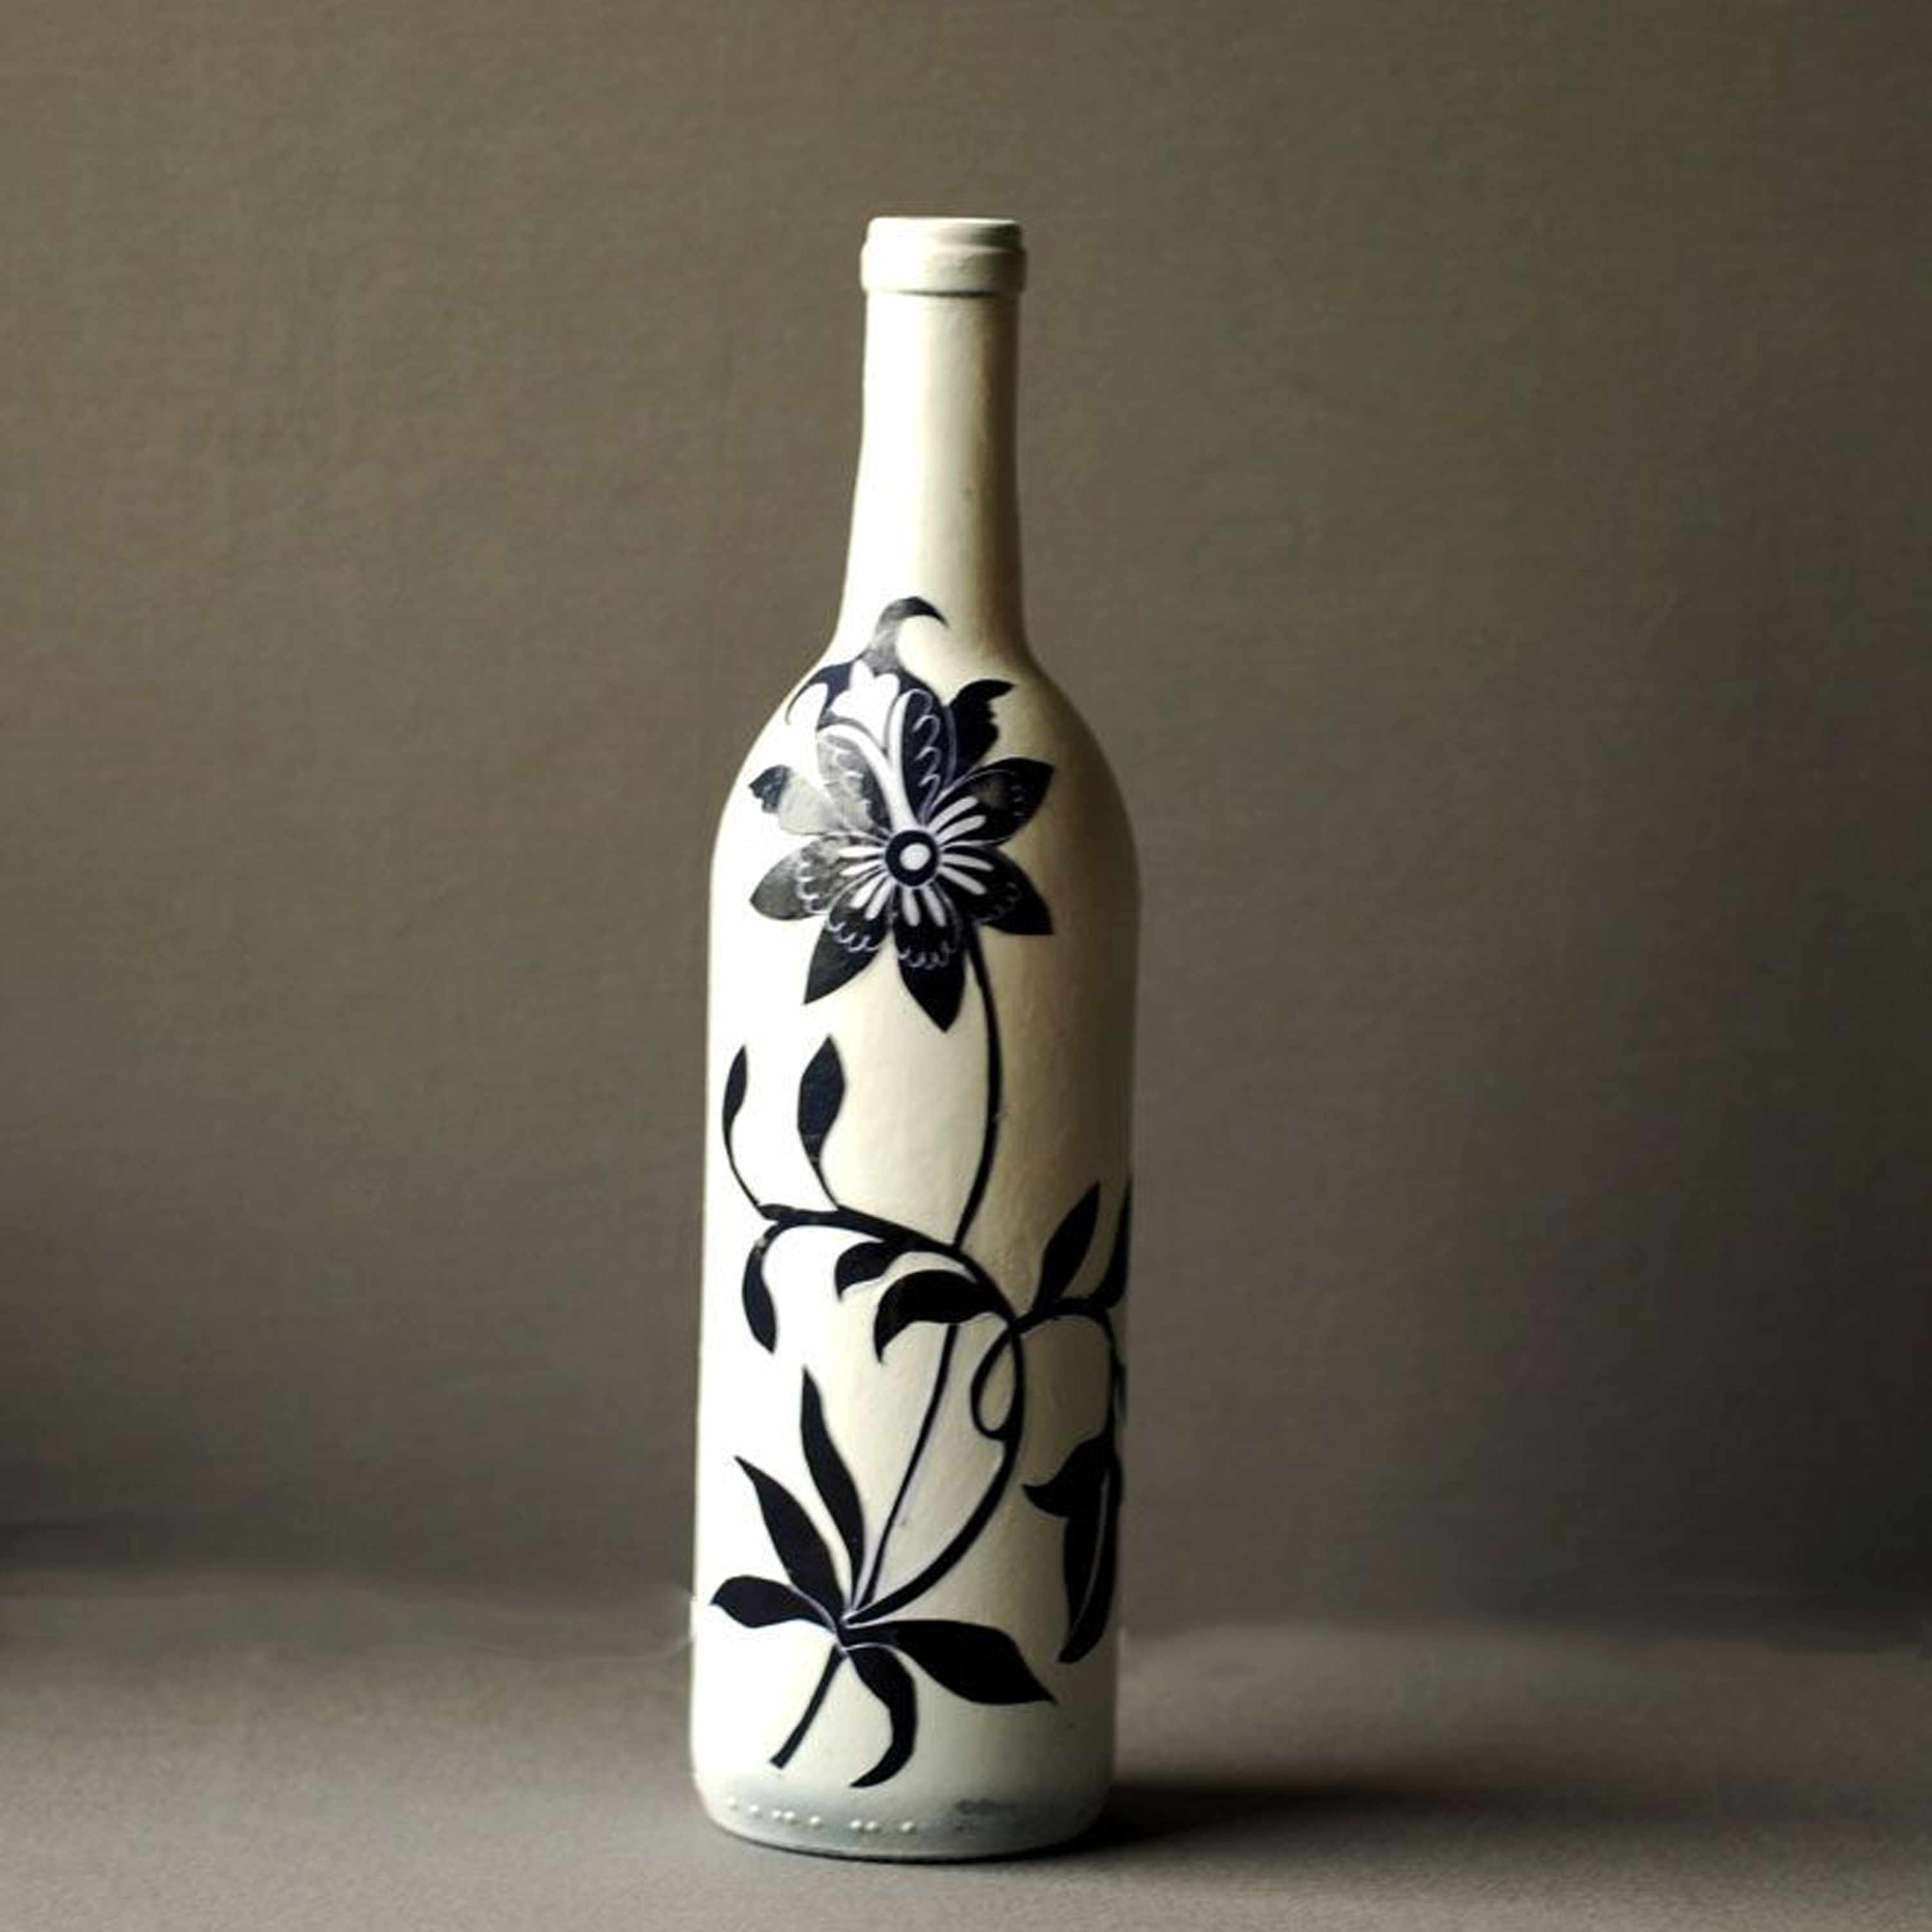 Decoupaged Wine Bottle Inspired By Blue And White Porcelain Simple bottle flat icon design. decoupaged wine bottle inspired by blue